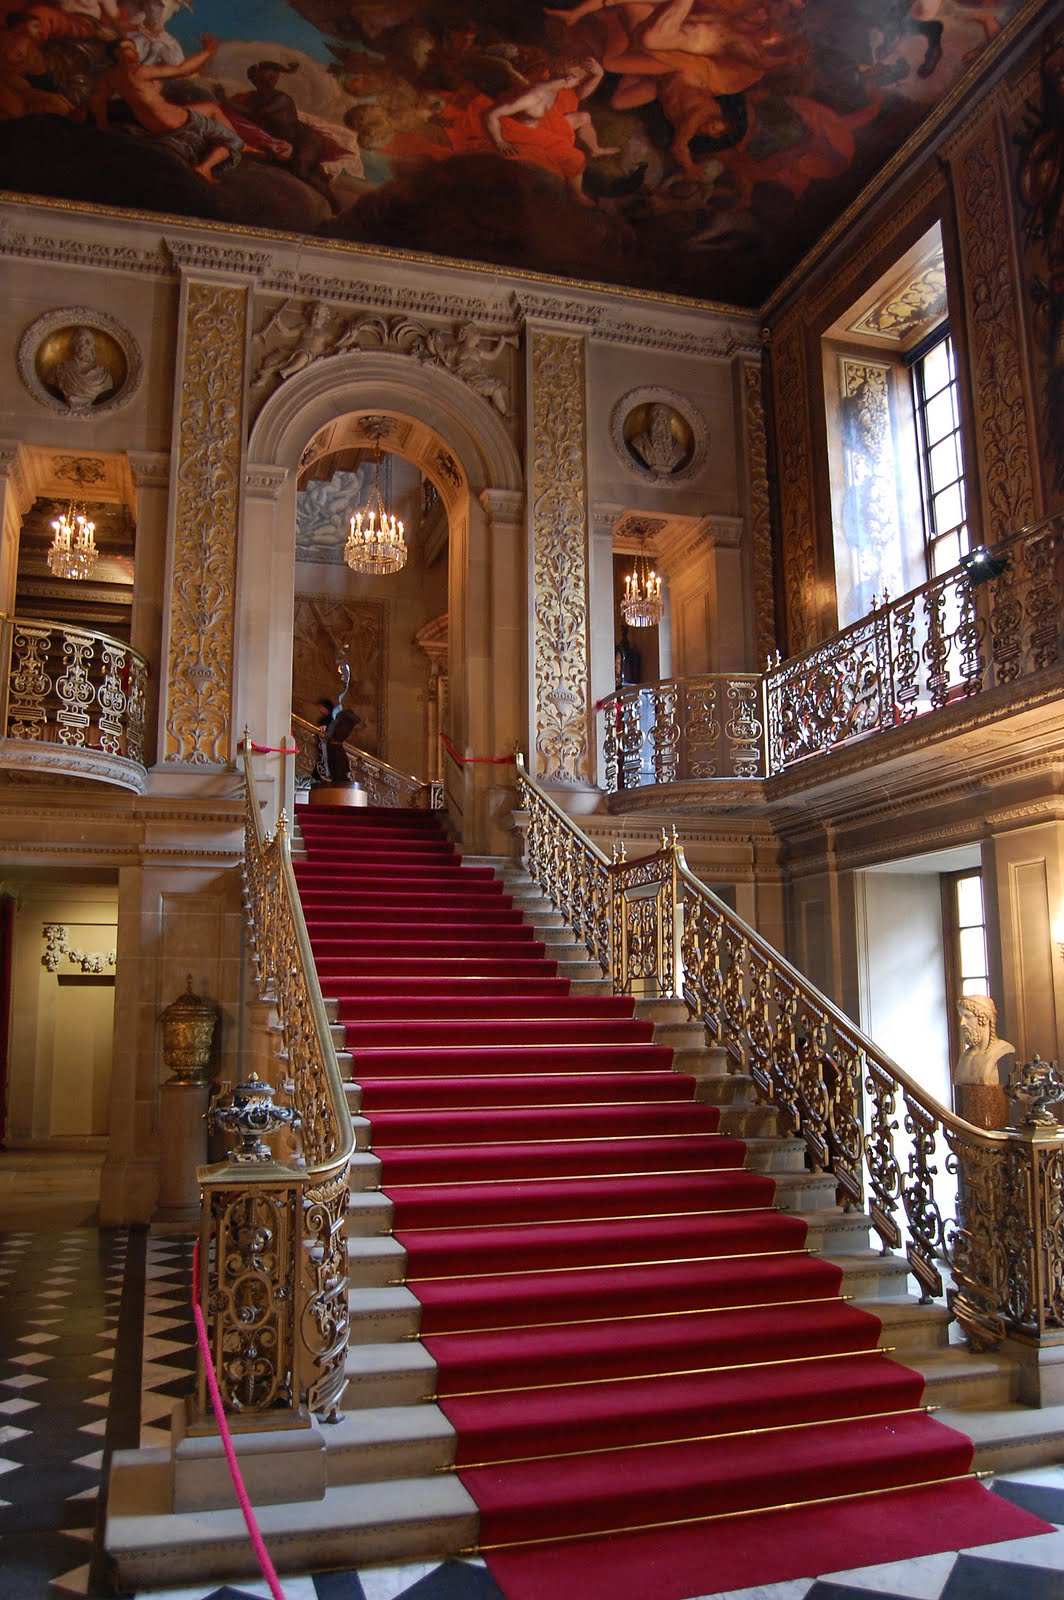 Chatsworth House History: Chatsworth House As Pemberley Of Pride And Prejudice